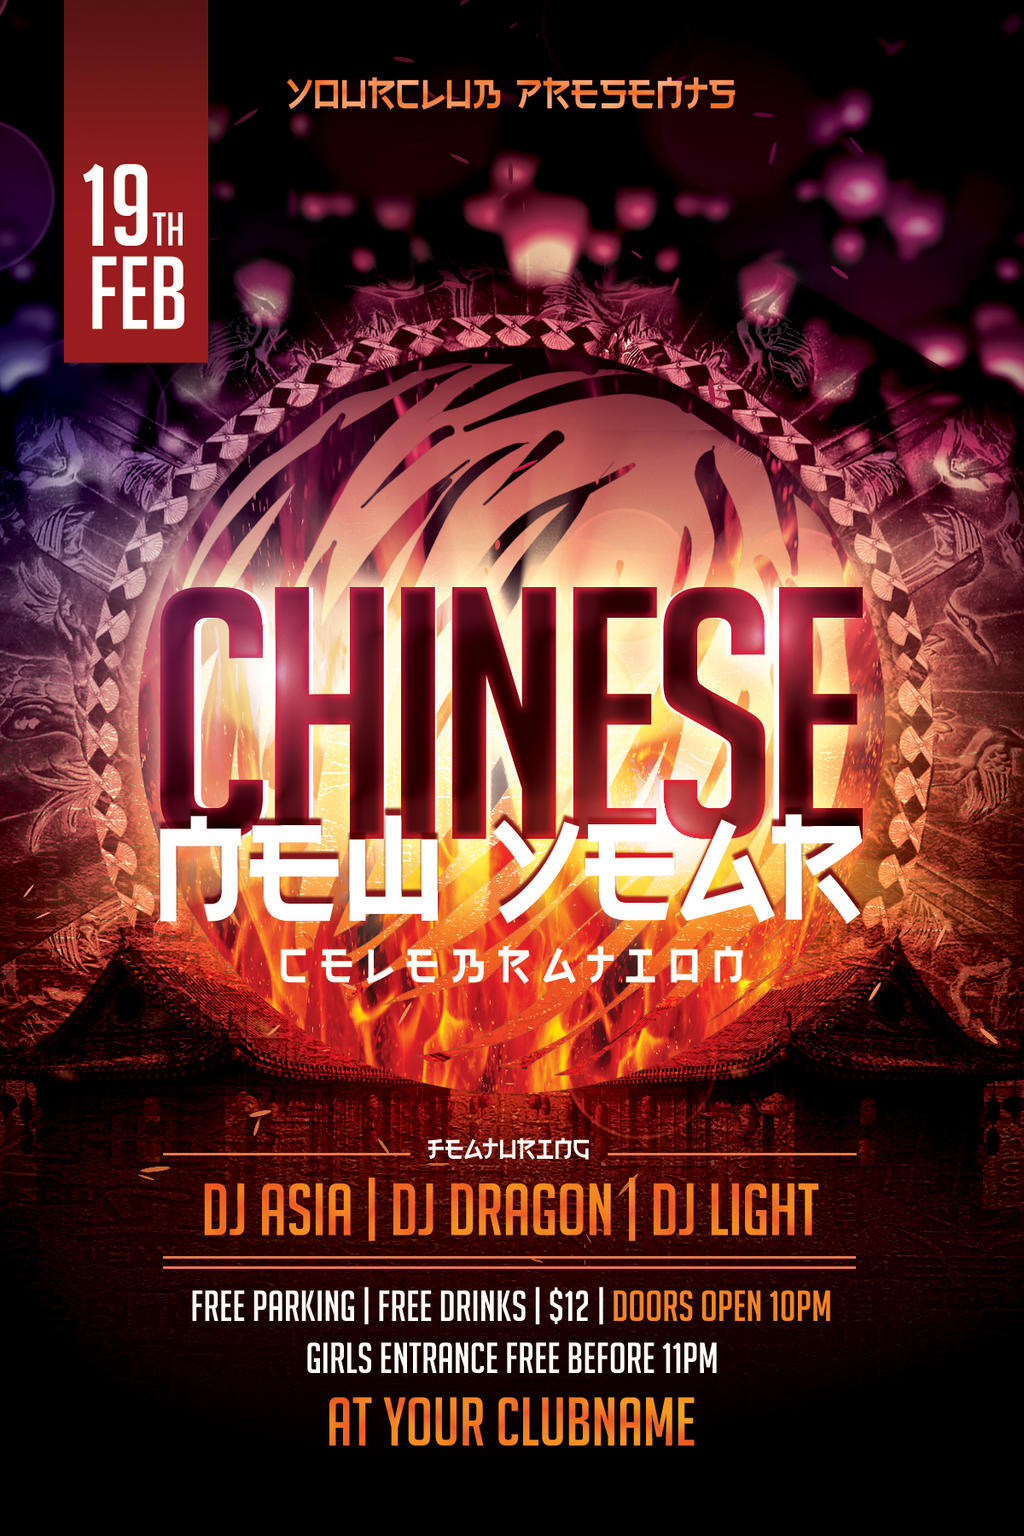 chinese new year flyer by dilanr on deviantart